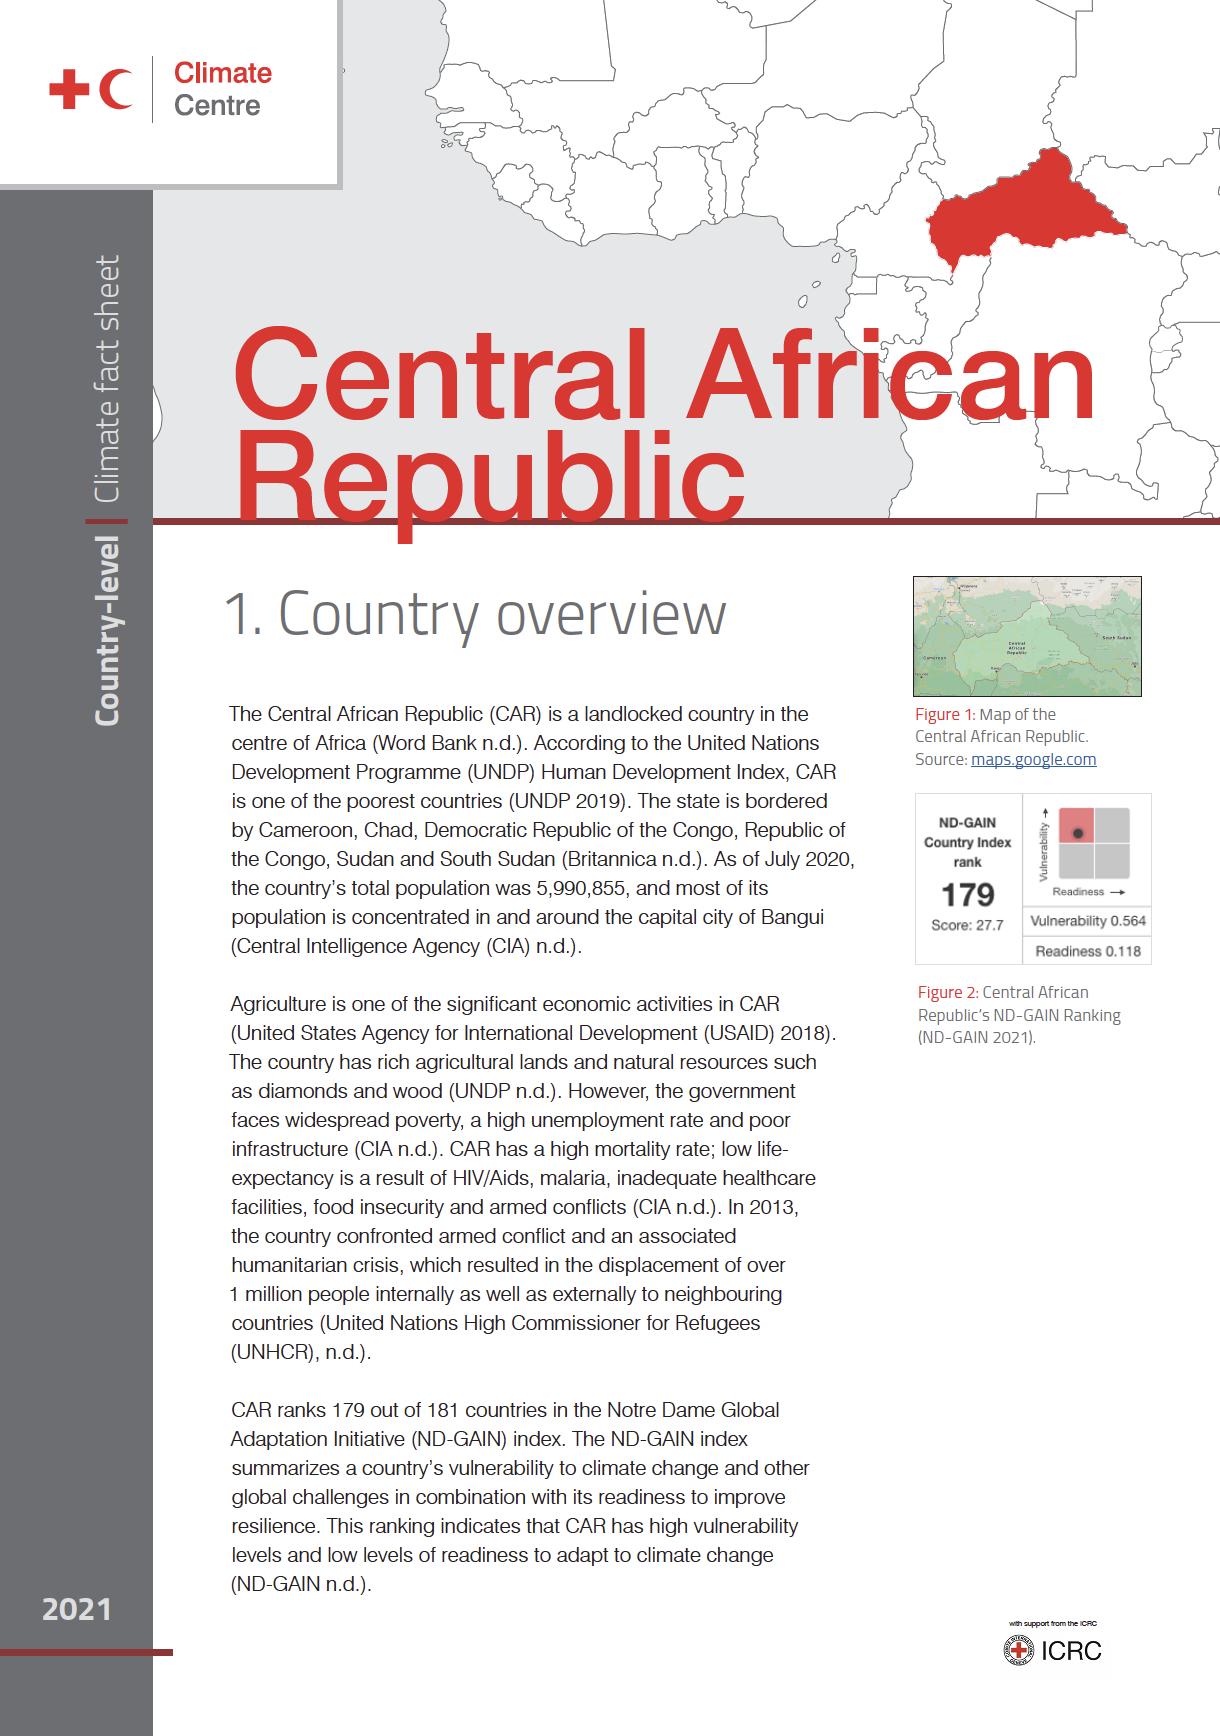 Country Factsheet: Central African Republic